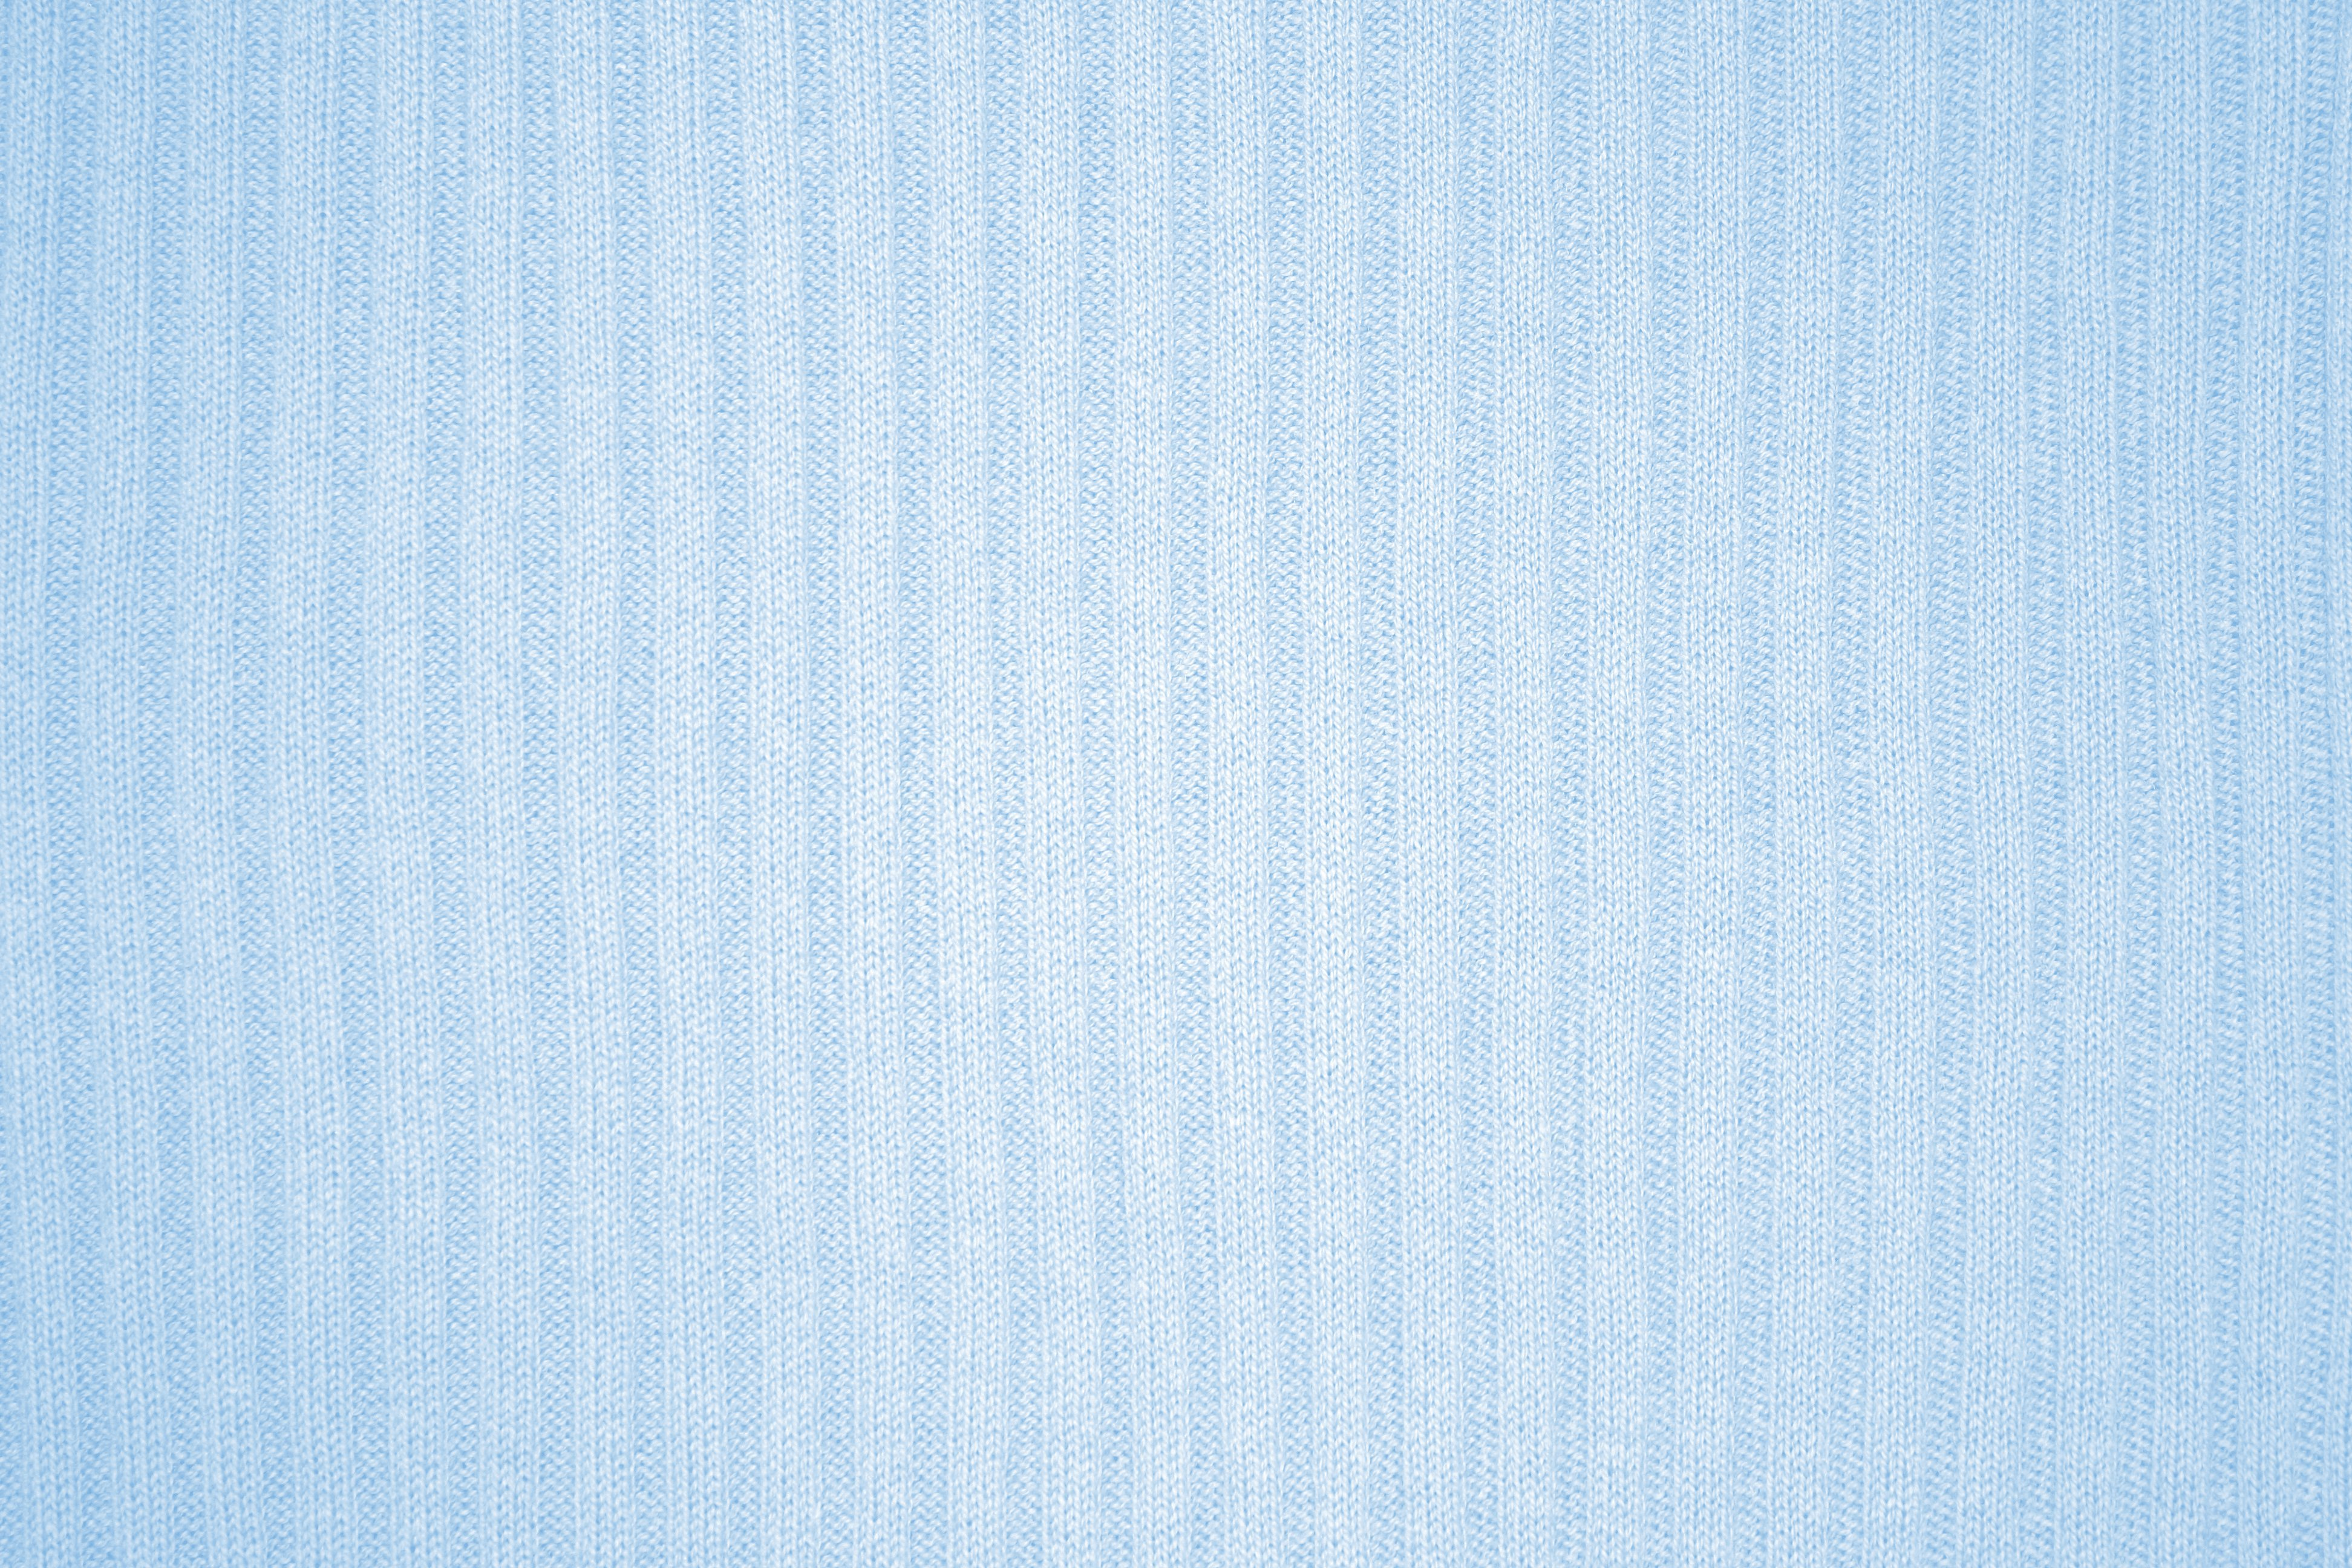 Baby Blue Ribbed Knit Fabric Texture   High Resolution Photo 3888x2592